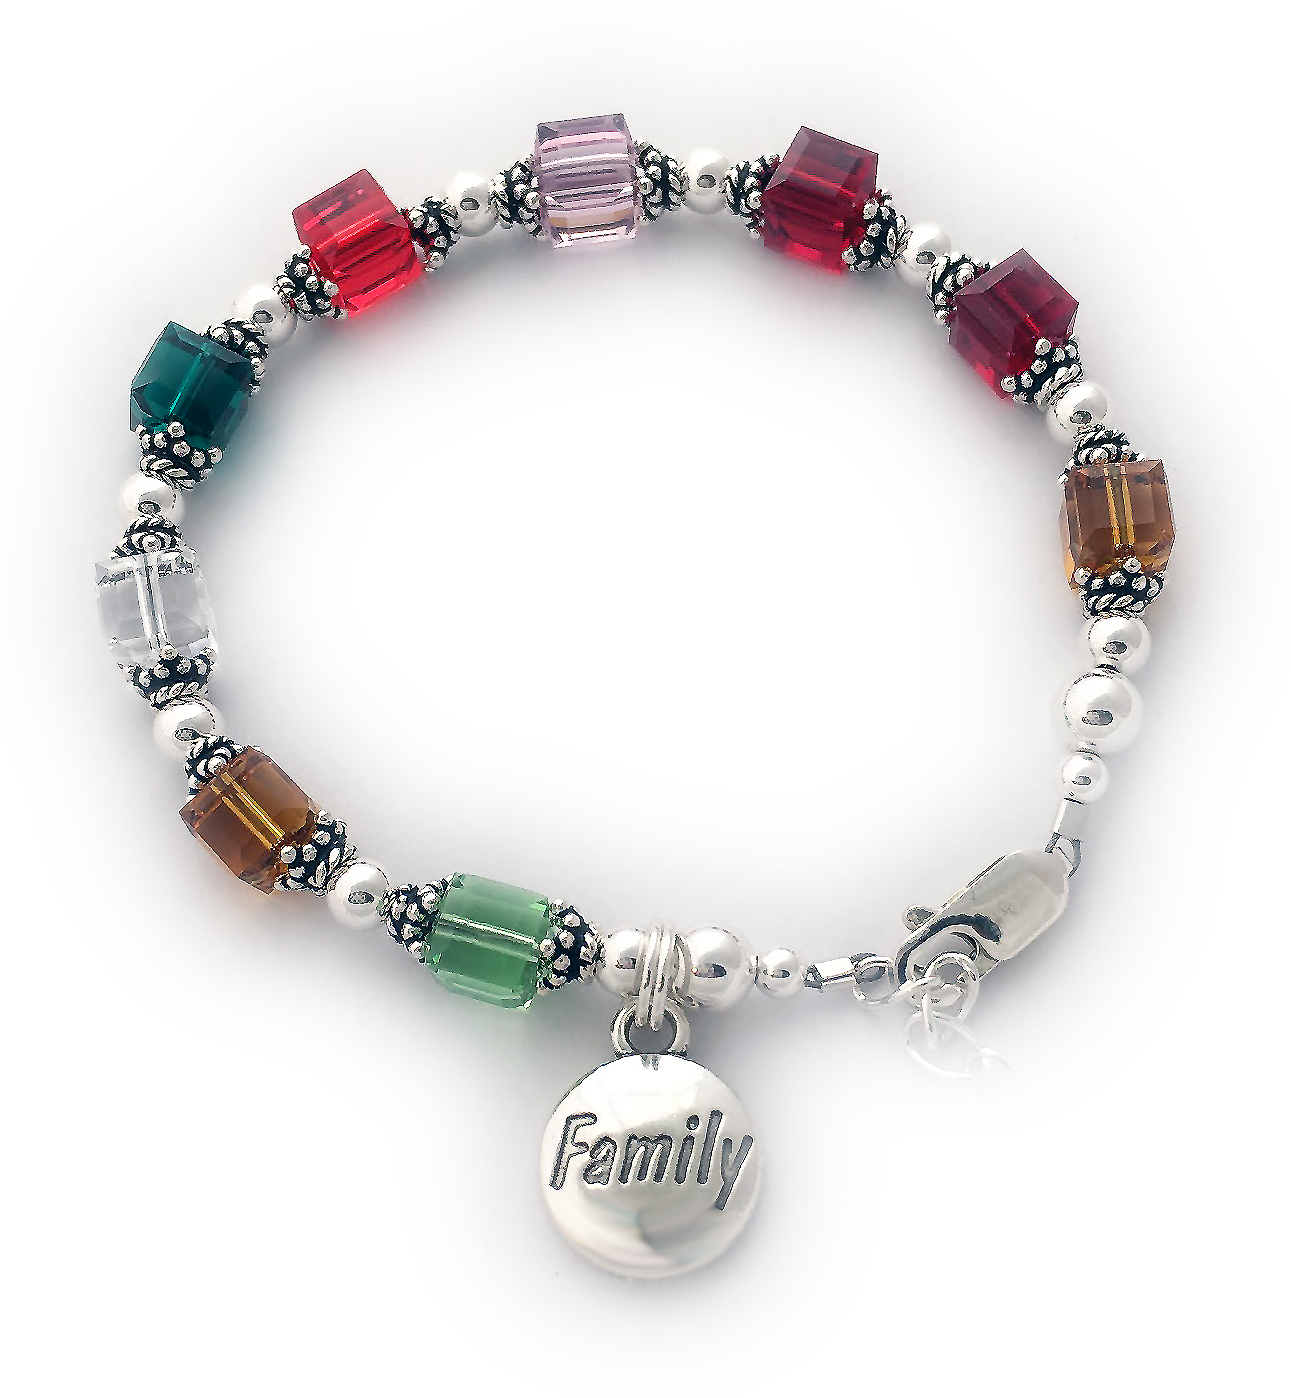 Birthstone Bracelet Enter: Aug Nov Apr May Jul Jun Jan Jan Nov Shown with an upgraded lobster claw clasp with an extension and a free FAMILY charm.